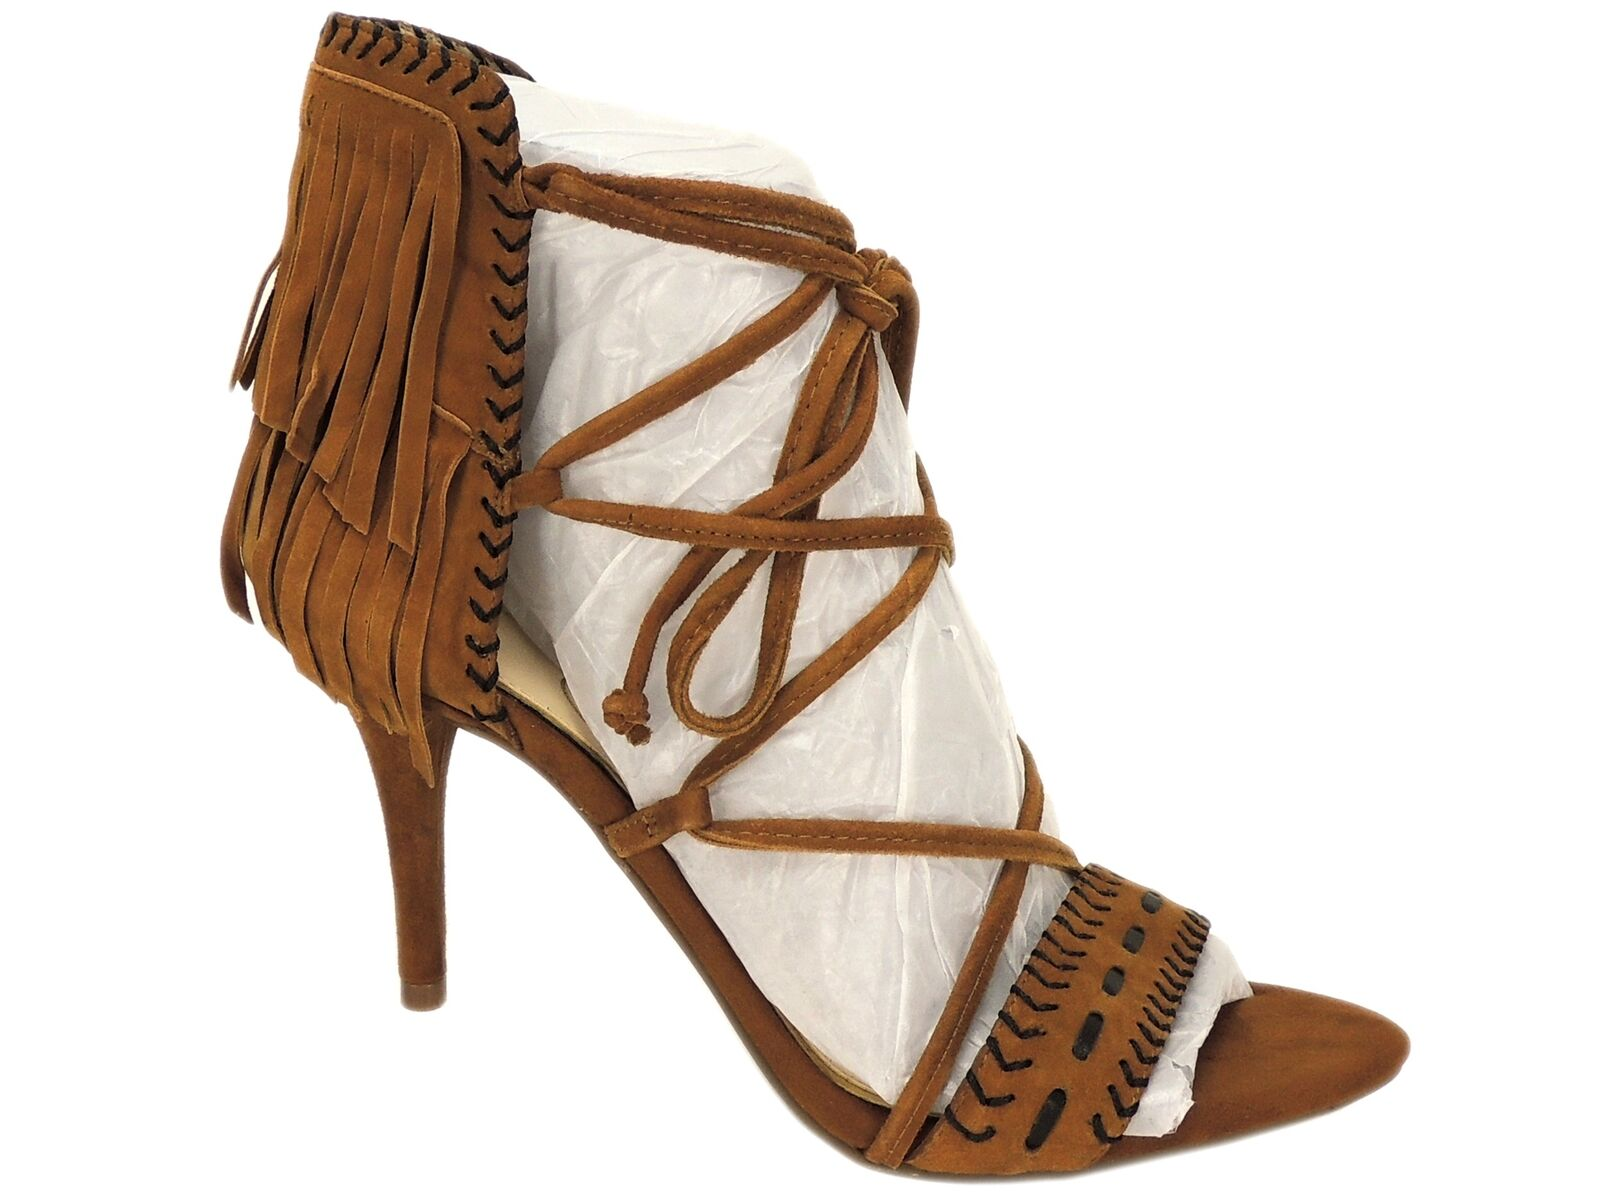 Jessica Simpson Women's Mareya Fringe Sandals Spiced Brown Lux Kid Suede Size 7M